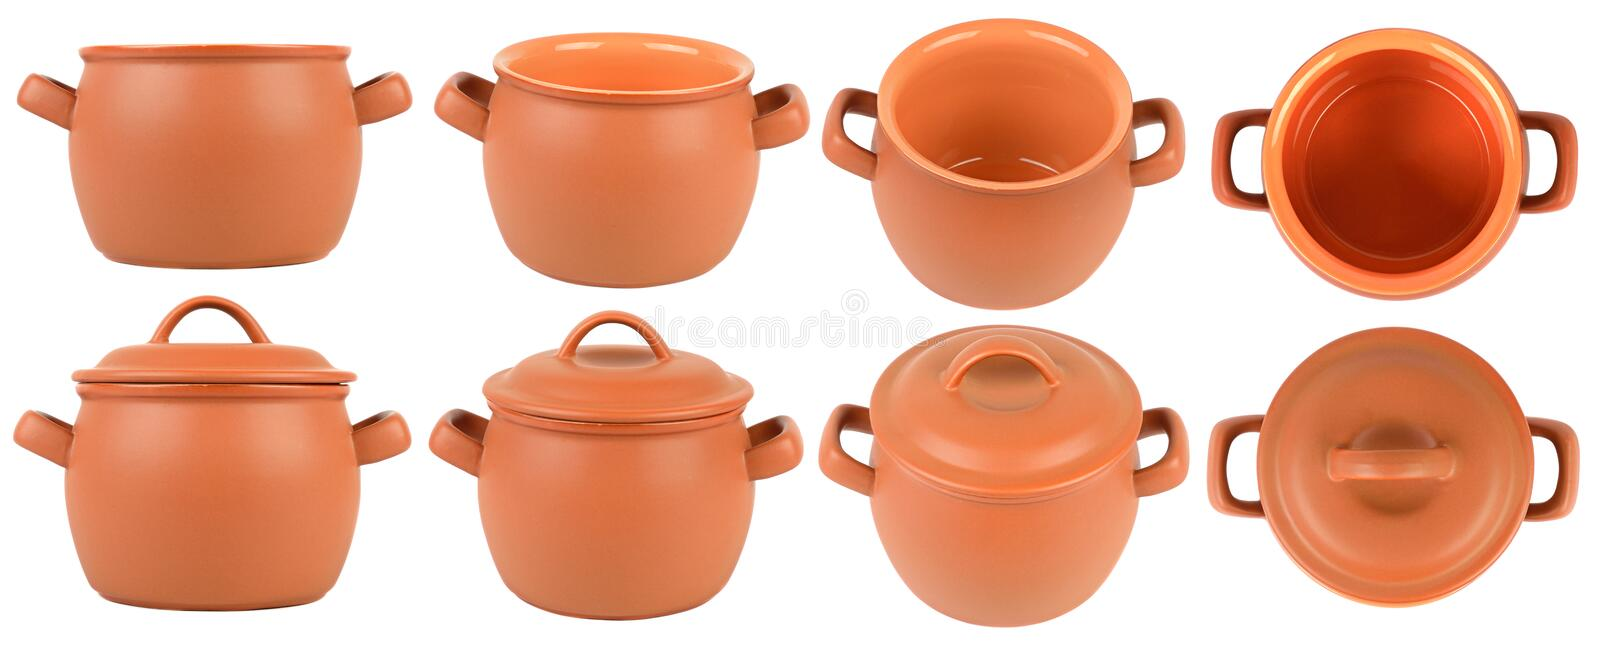 Set ceramic saucepans isolated on white. Different angles and large size royalty free stock photography